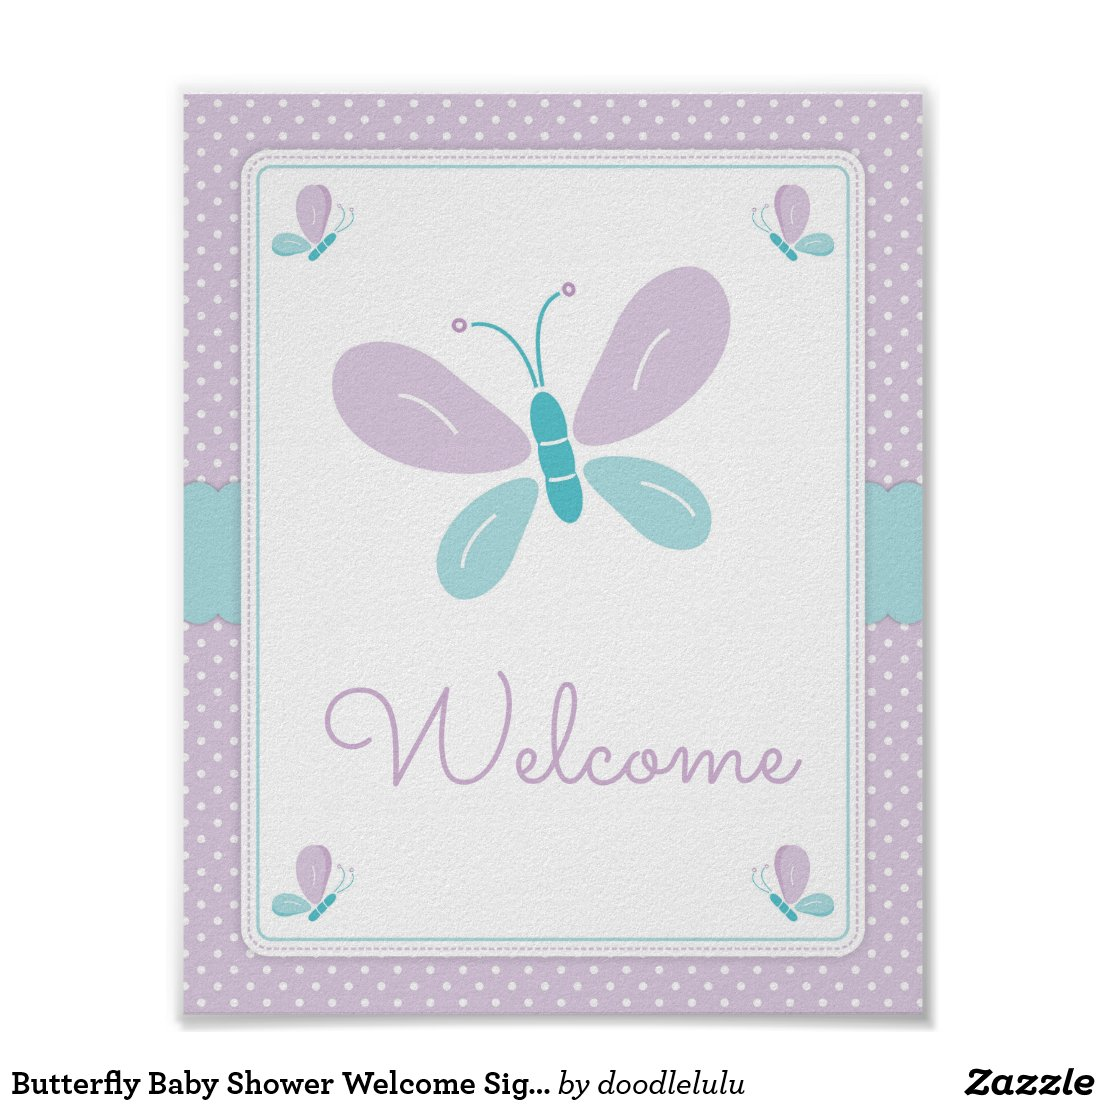 Butterfly Baby Shower Welcome Sign purple and blue